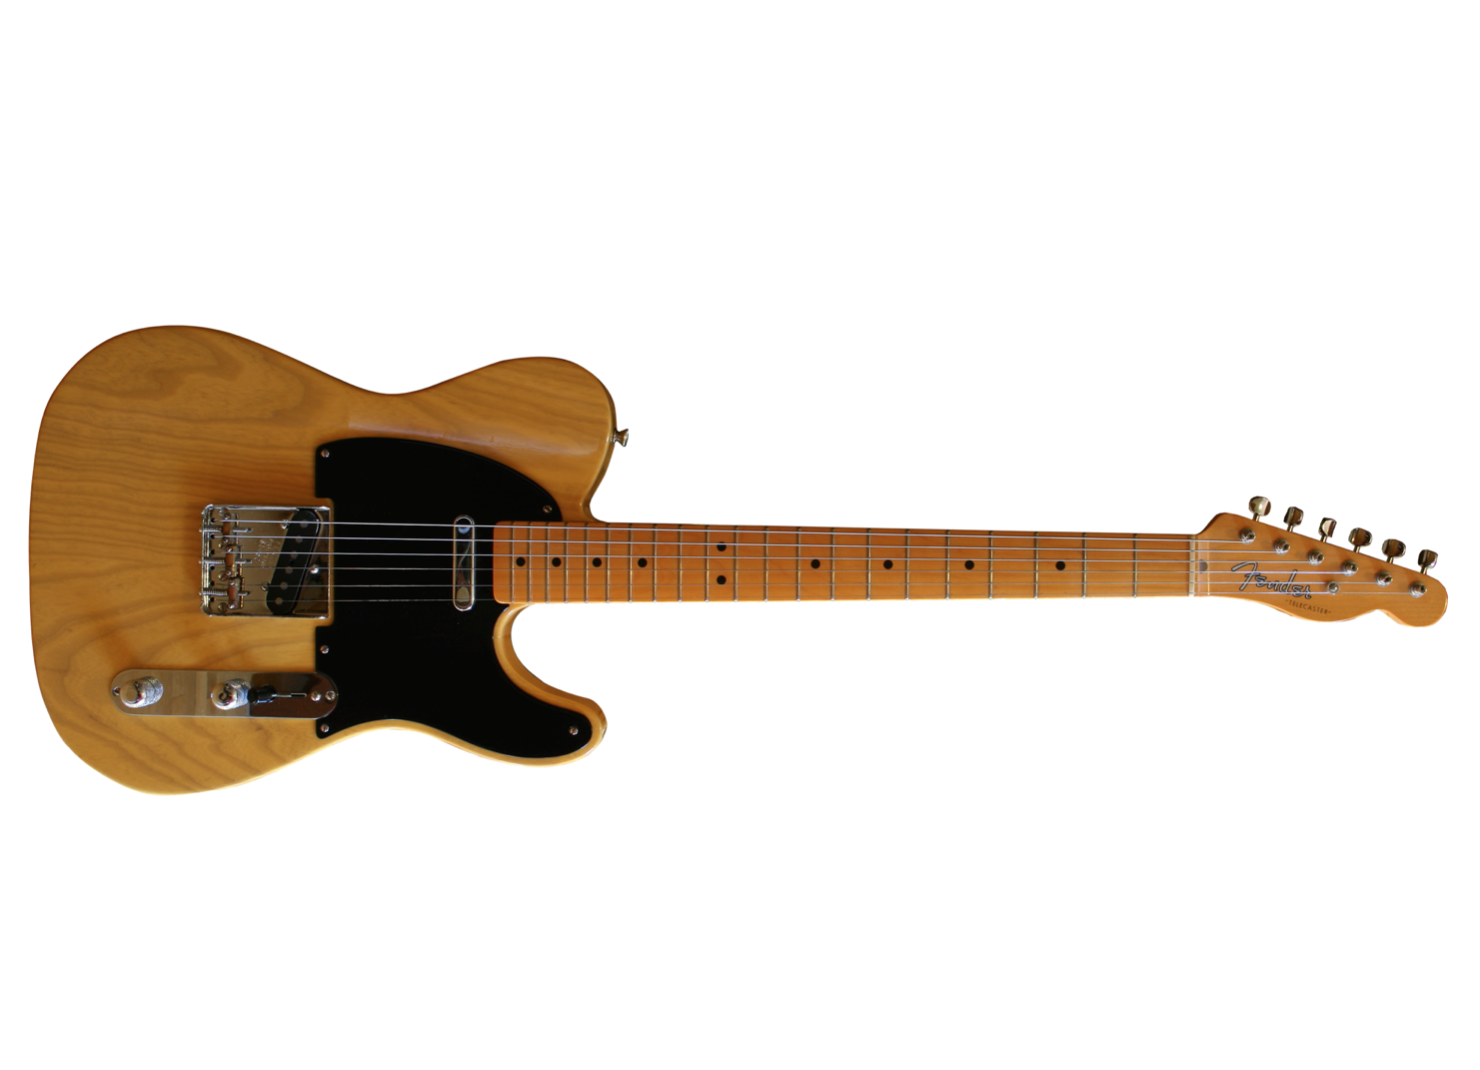 1954 Fender Telecaster Wiring Download Diagrams Stratocaster Diagram For 1950 Mercury Engine 1957 T Shirts